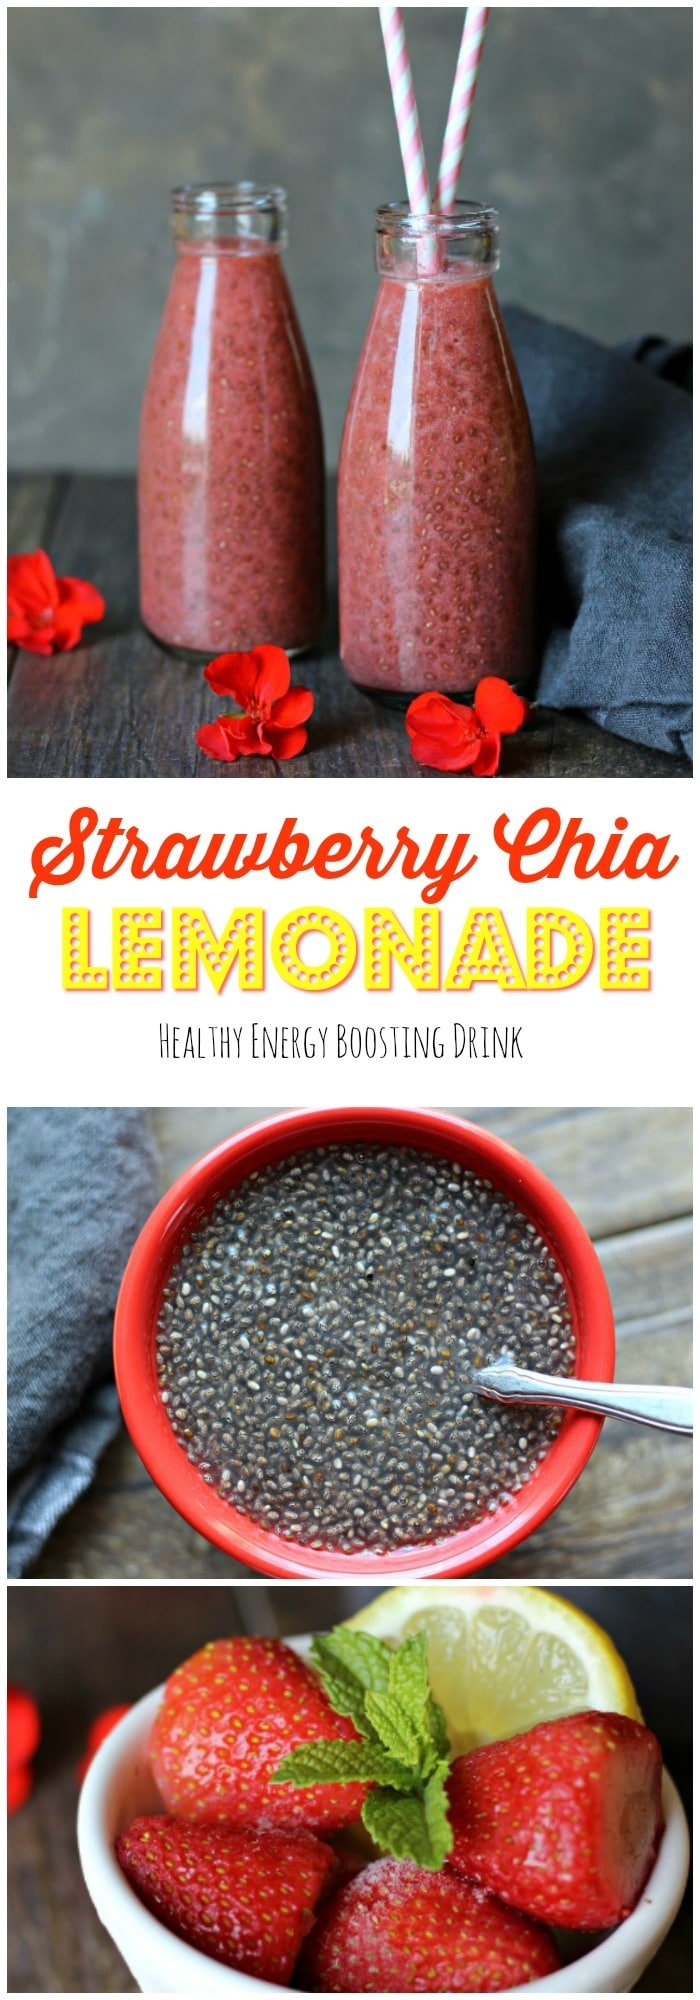 This invigorating Strawberry Chia Lemonade is a delicious healthy and energy boosting drink. A must try! gardeninthekitchen.com